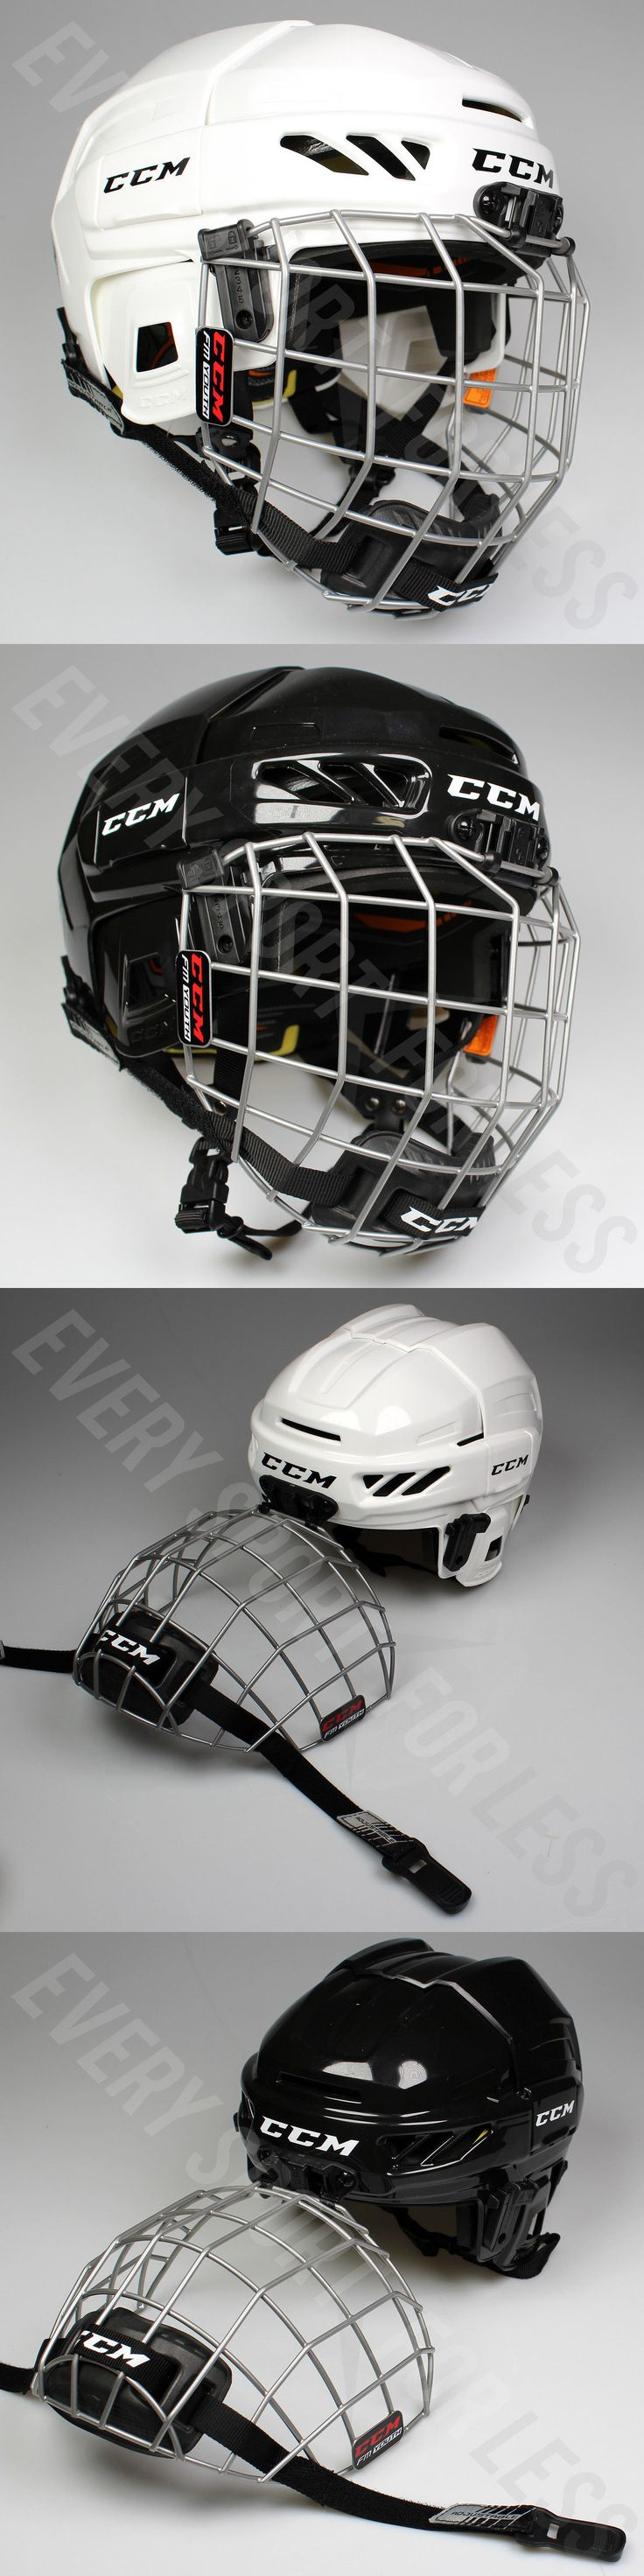 Helmets 20854: Ccm Fitlite 3Ds Combo Youth Hockey Helmet W Cage-Various Colors (New) Lists@$70 -> BUY IT NOW ONLY: $59.99 on eBay!